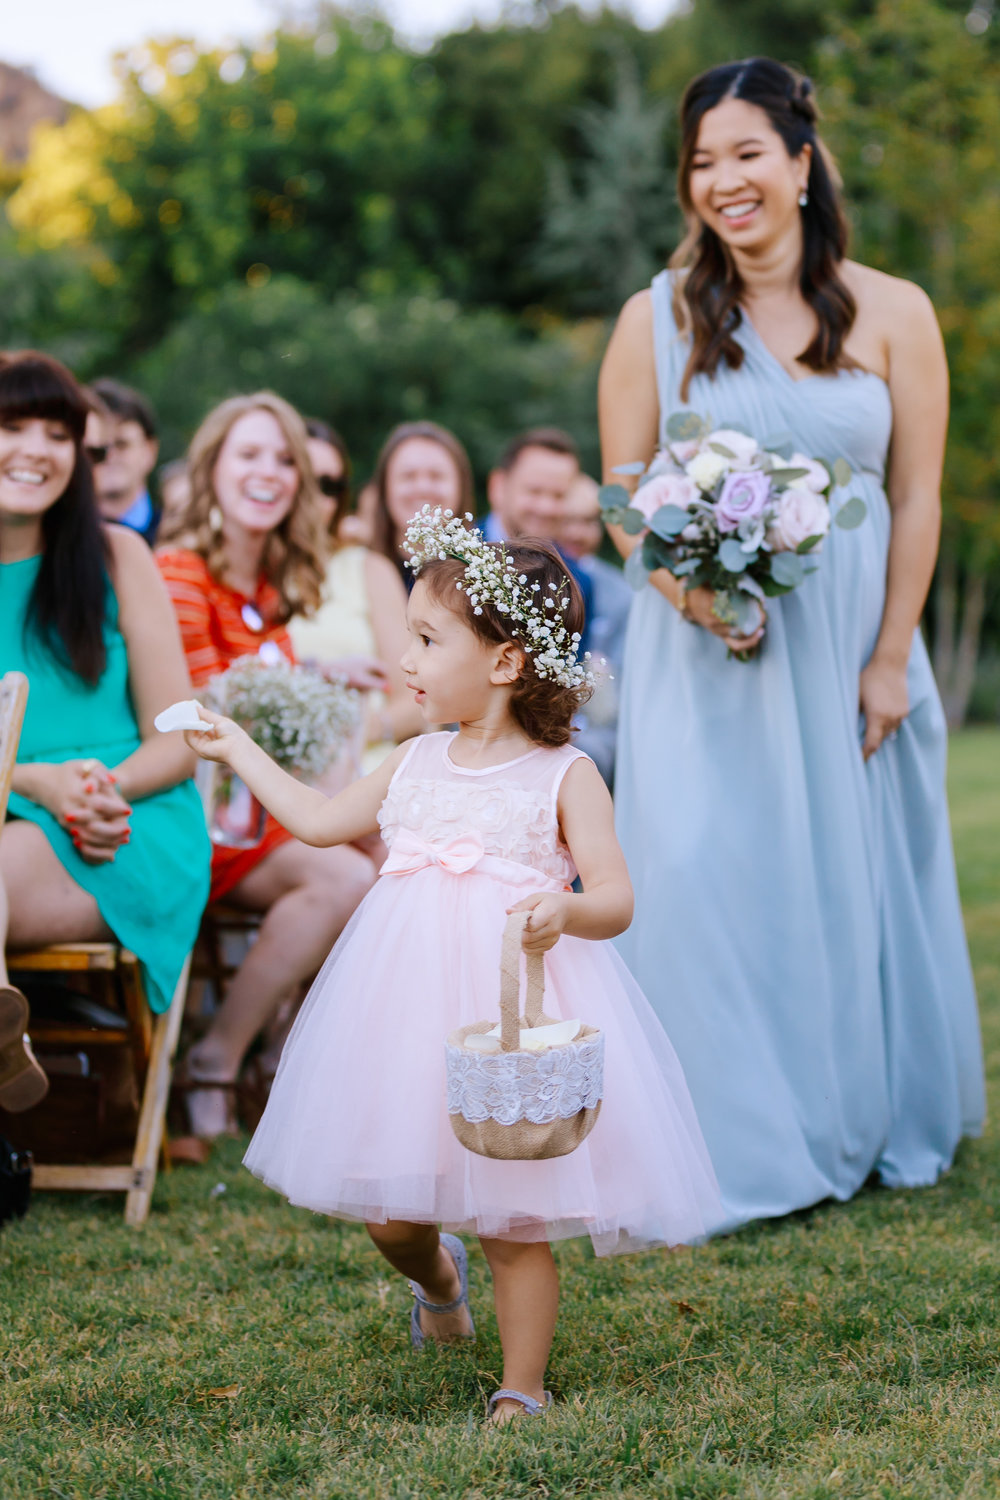 C&M flower girl throwing petals.jpg